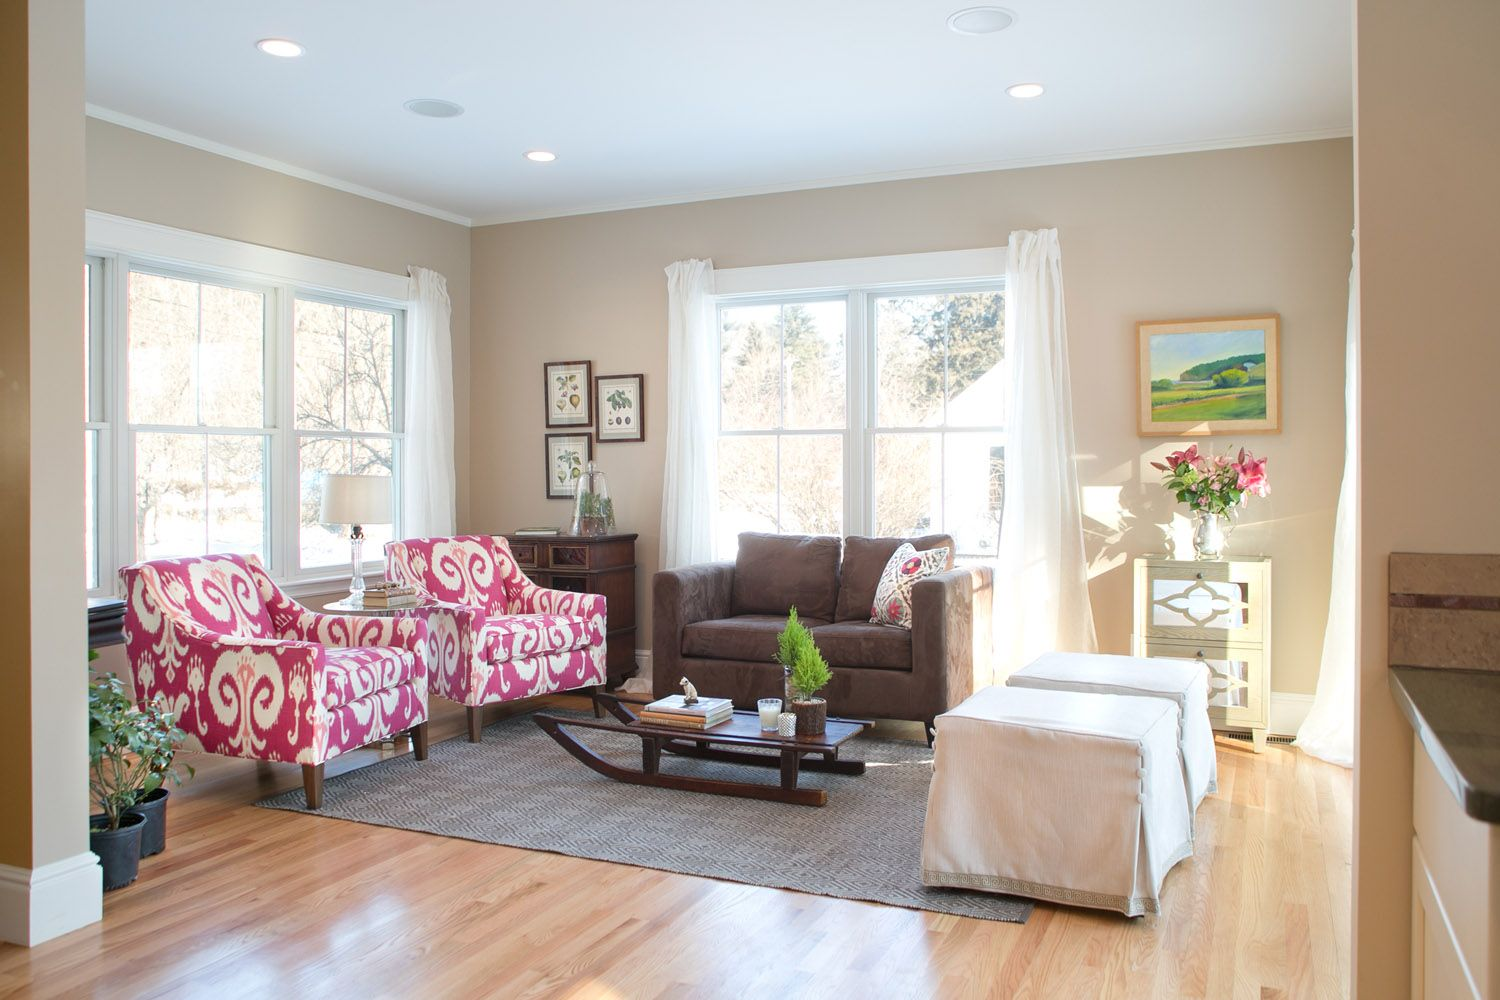 paint one of best colors to paint living room walls with on best living room colors id=70896